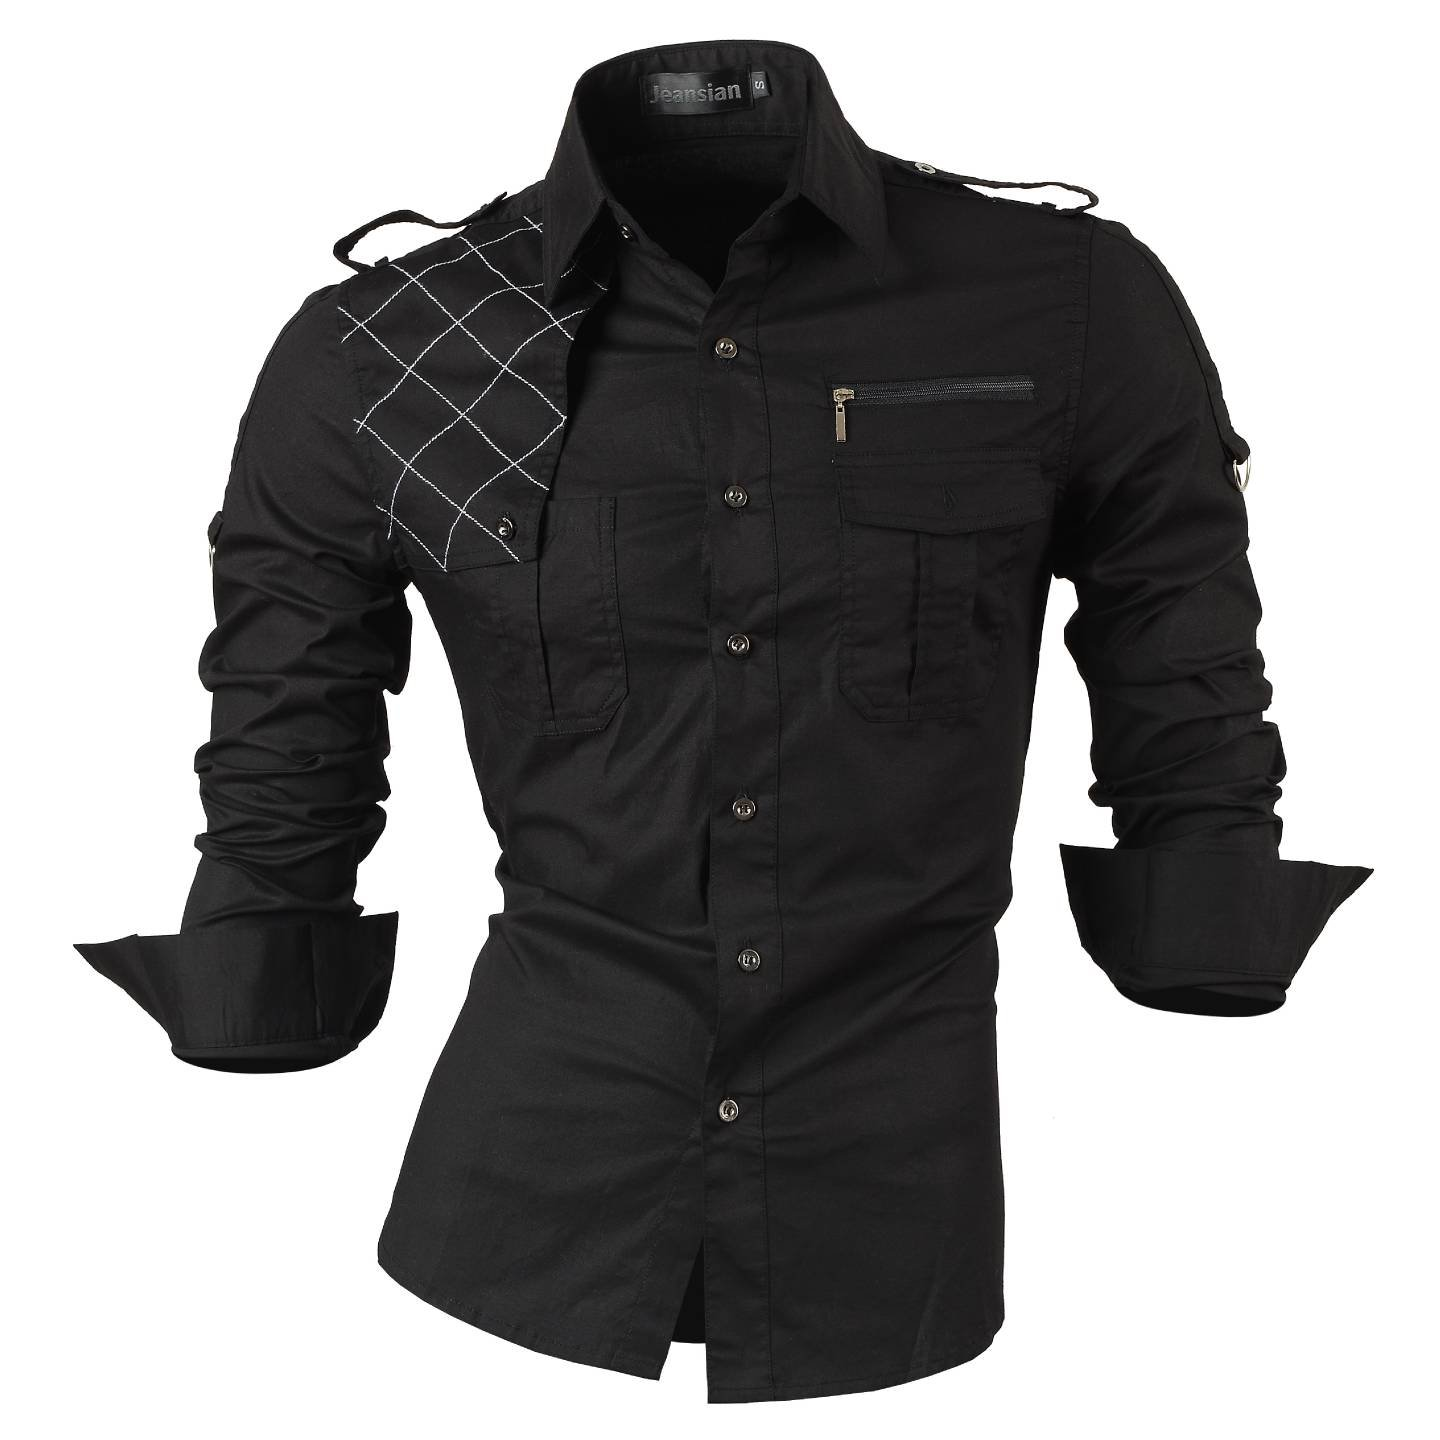 Jeansian De Manga Larga De Los Hombres De Moda Slim Fit Camisas Men Fashion Shirts 8397